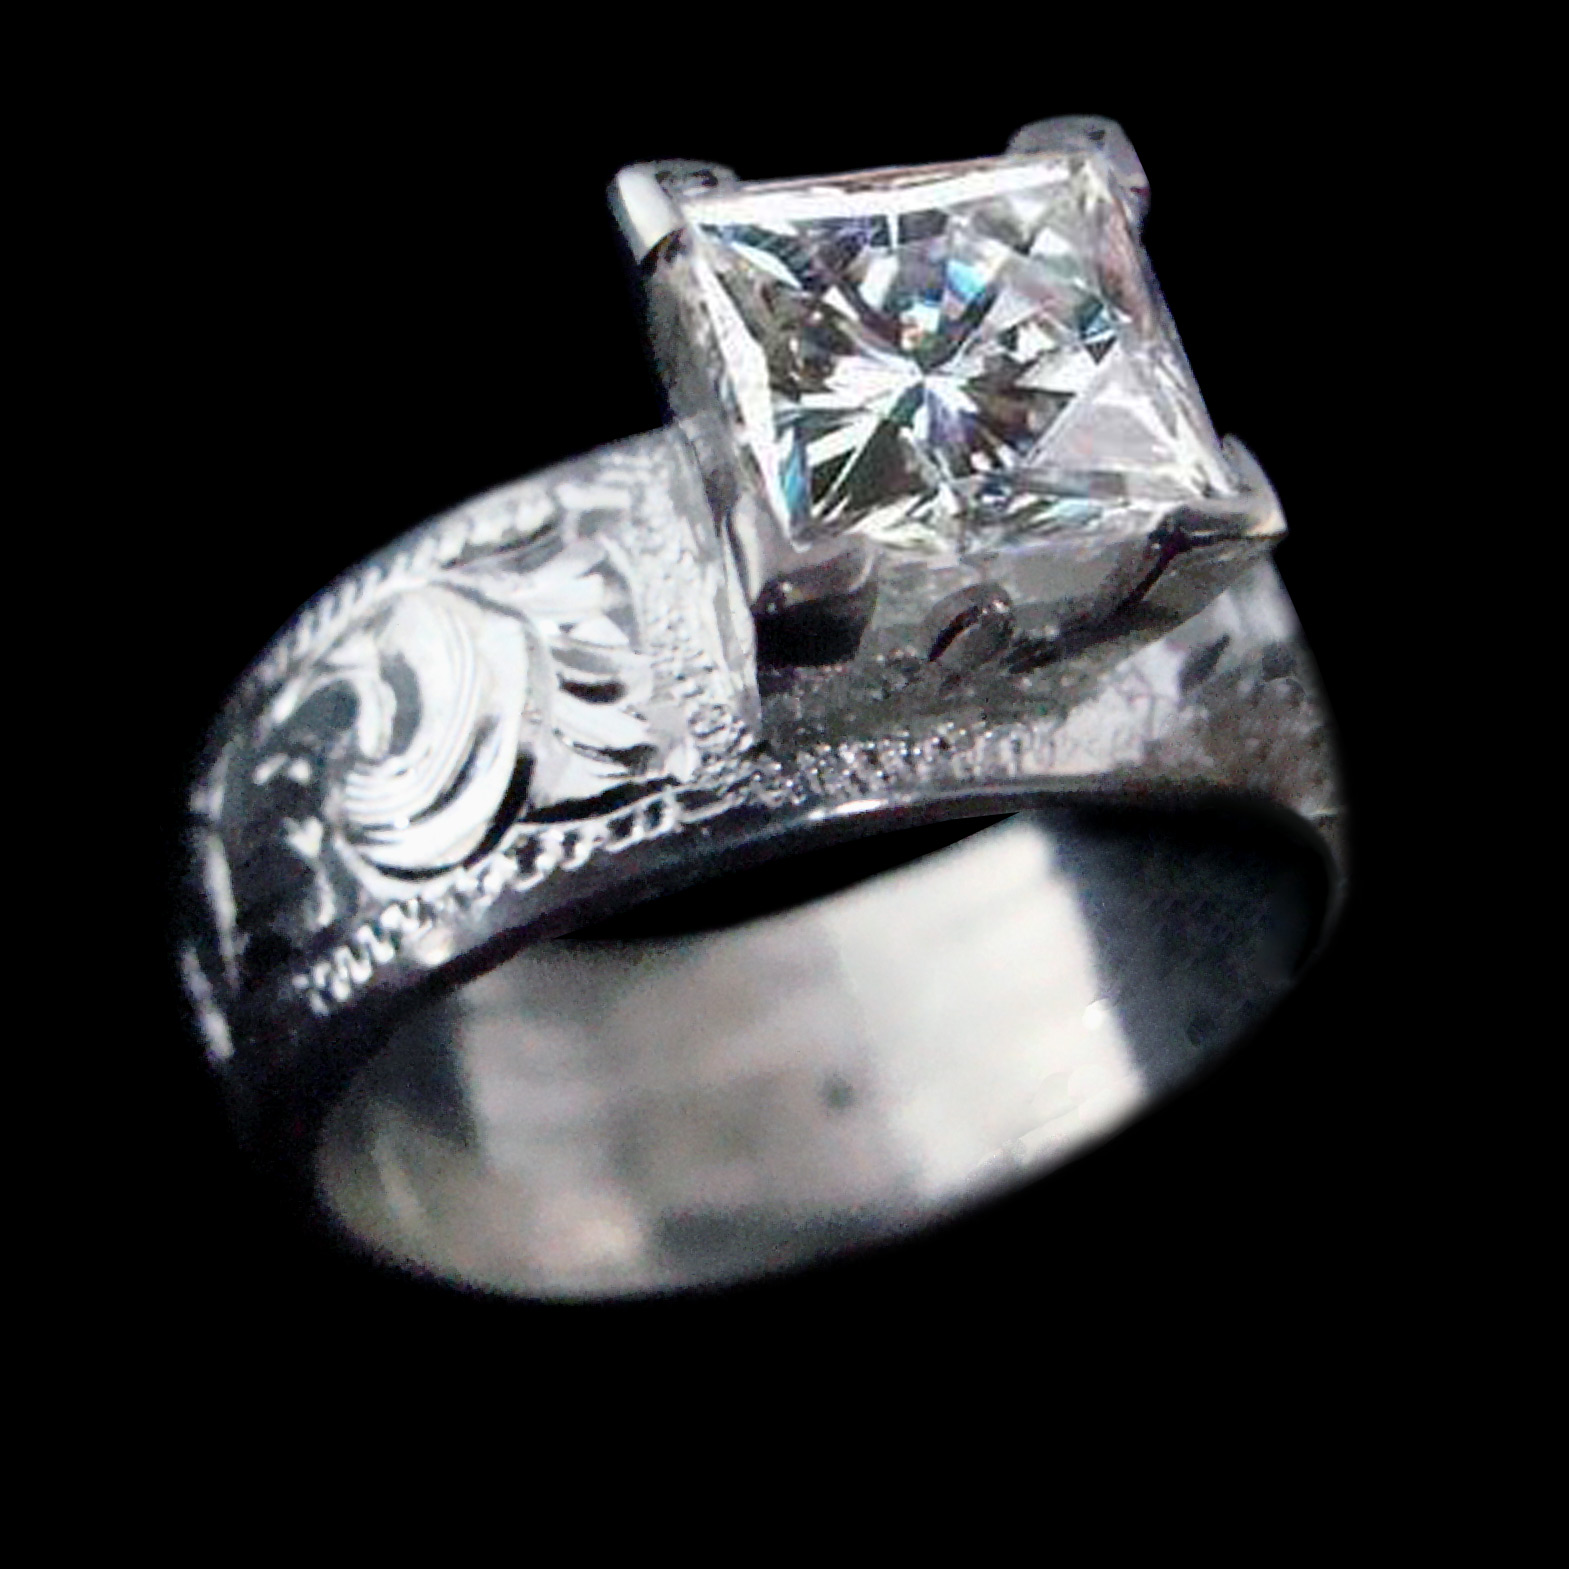 cowboy cowboyjewelers brilliant jewelry wedding on rings the source matvuk engagement com fascinating